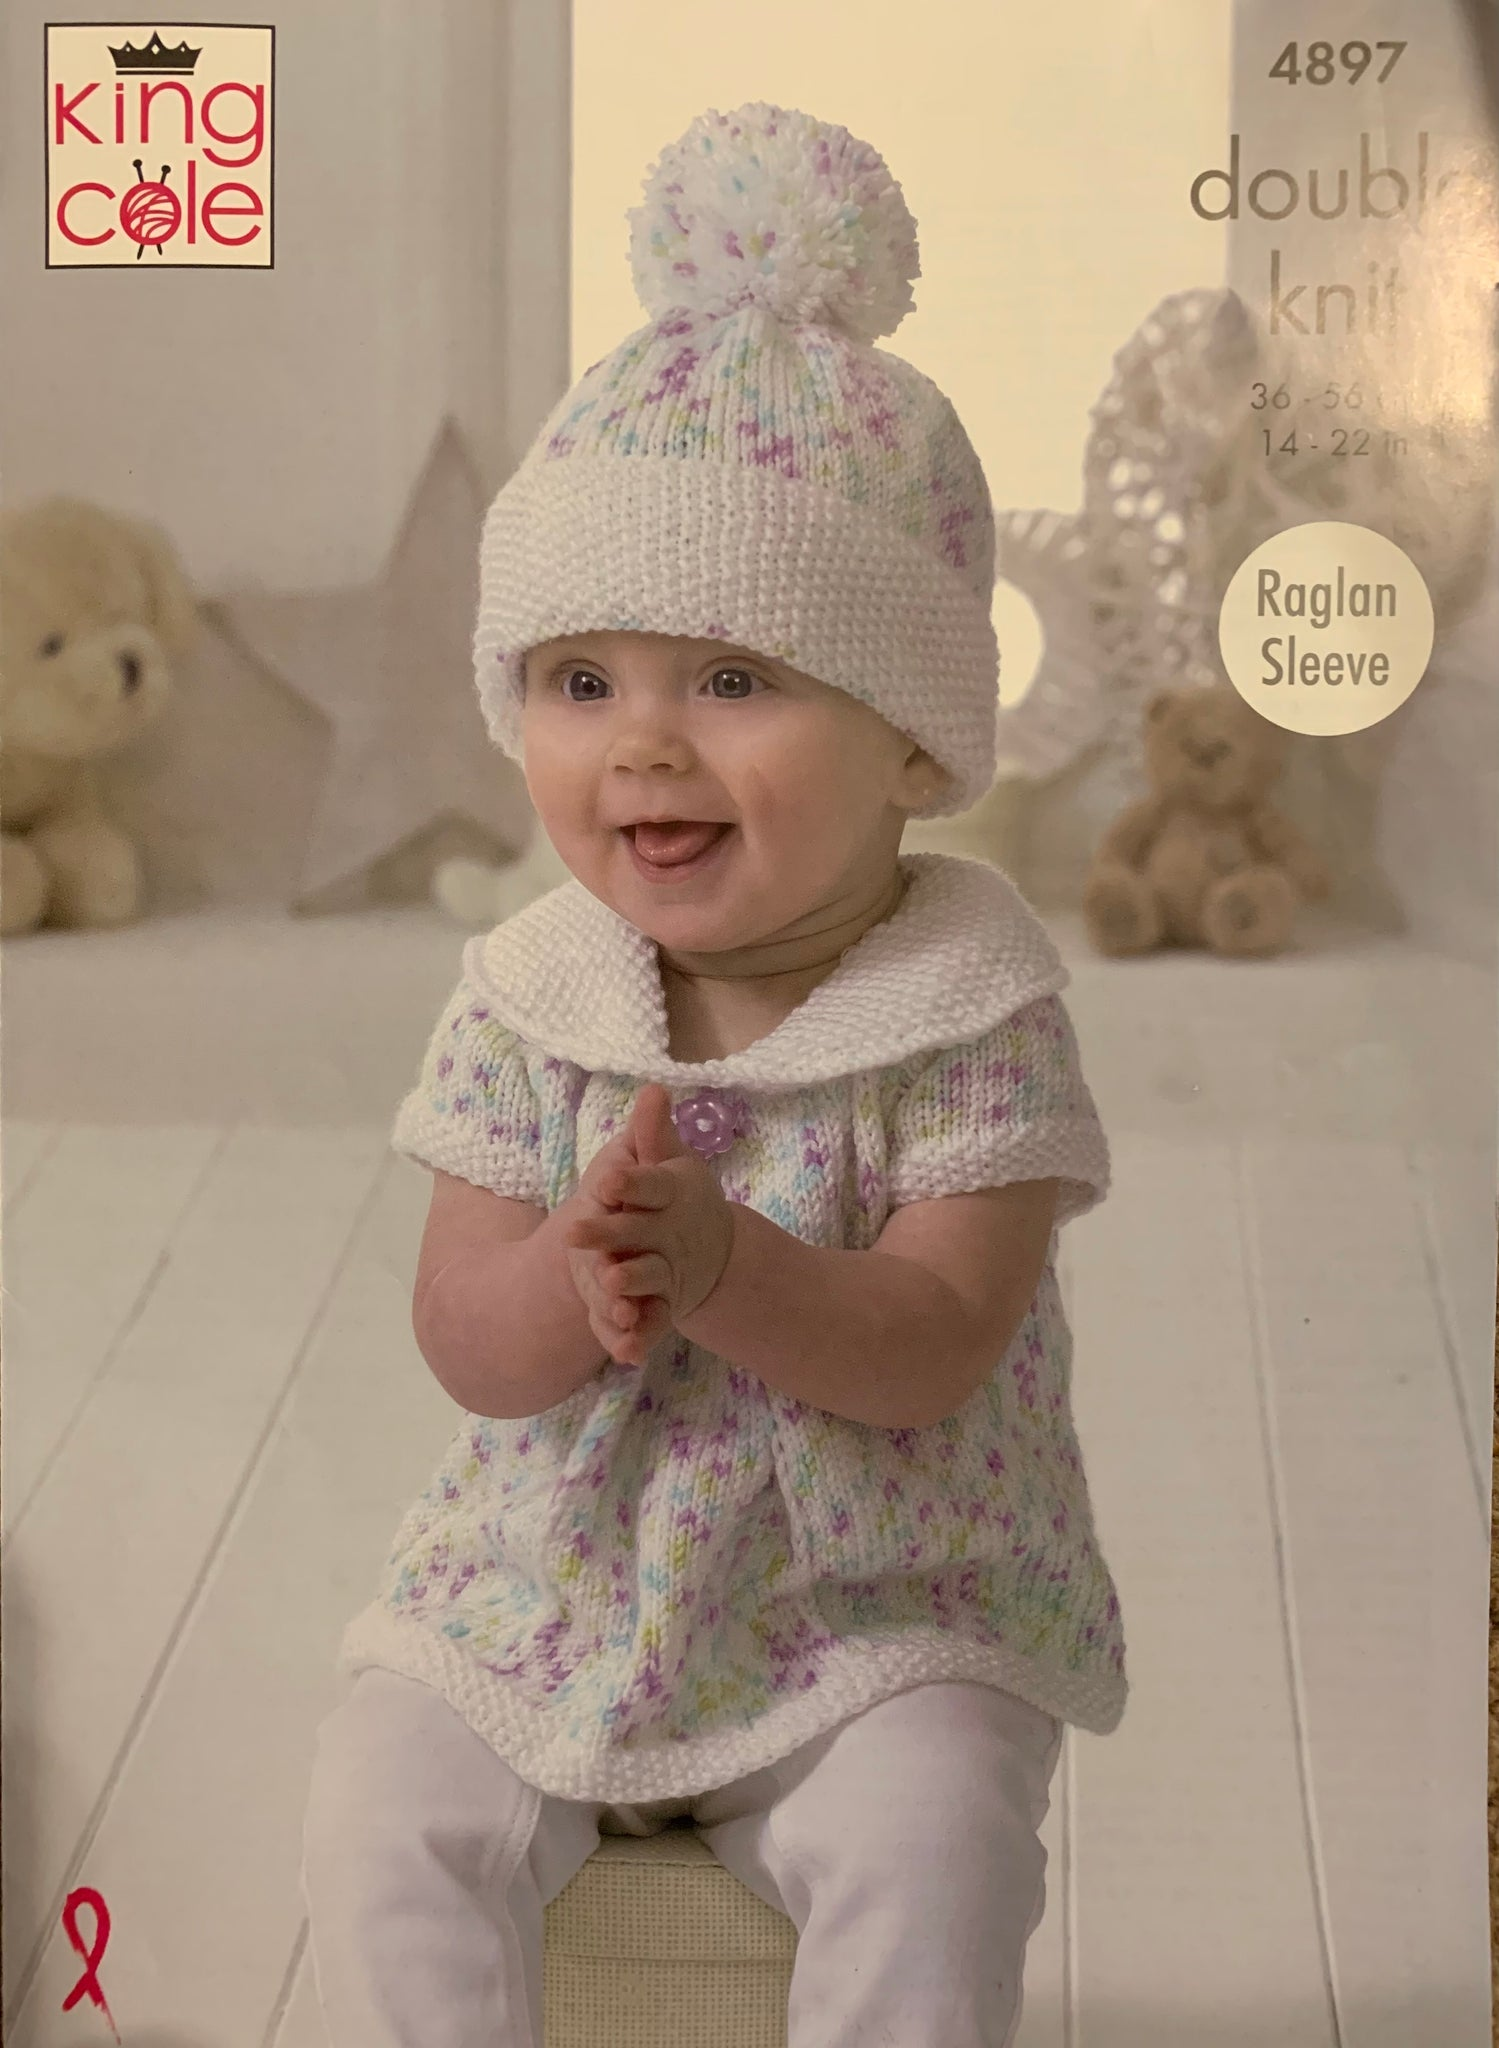 4897 King Cole double knit baby dress, hoodie, top, hat and leggings knitting pattern